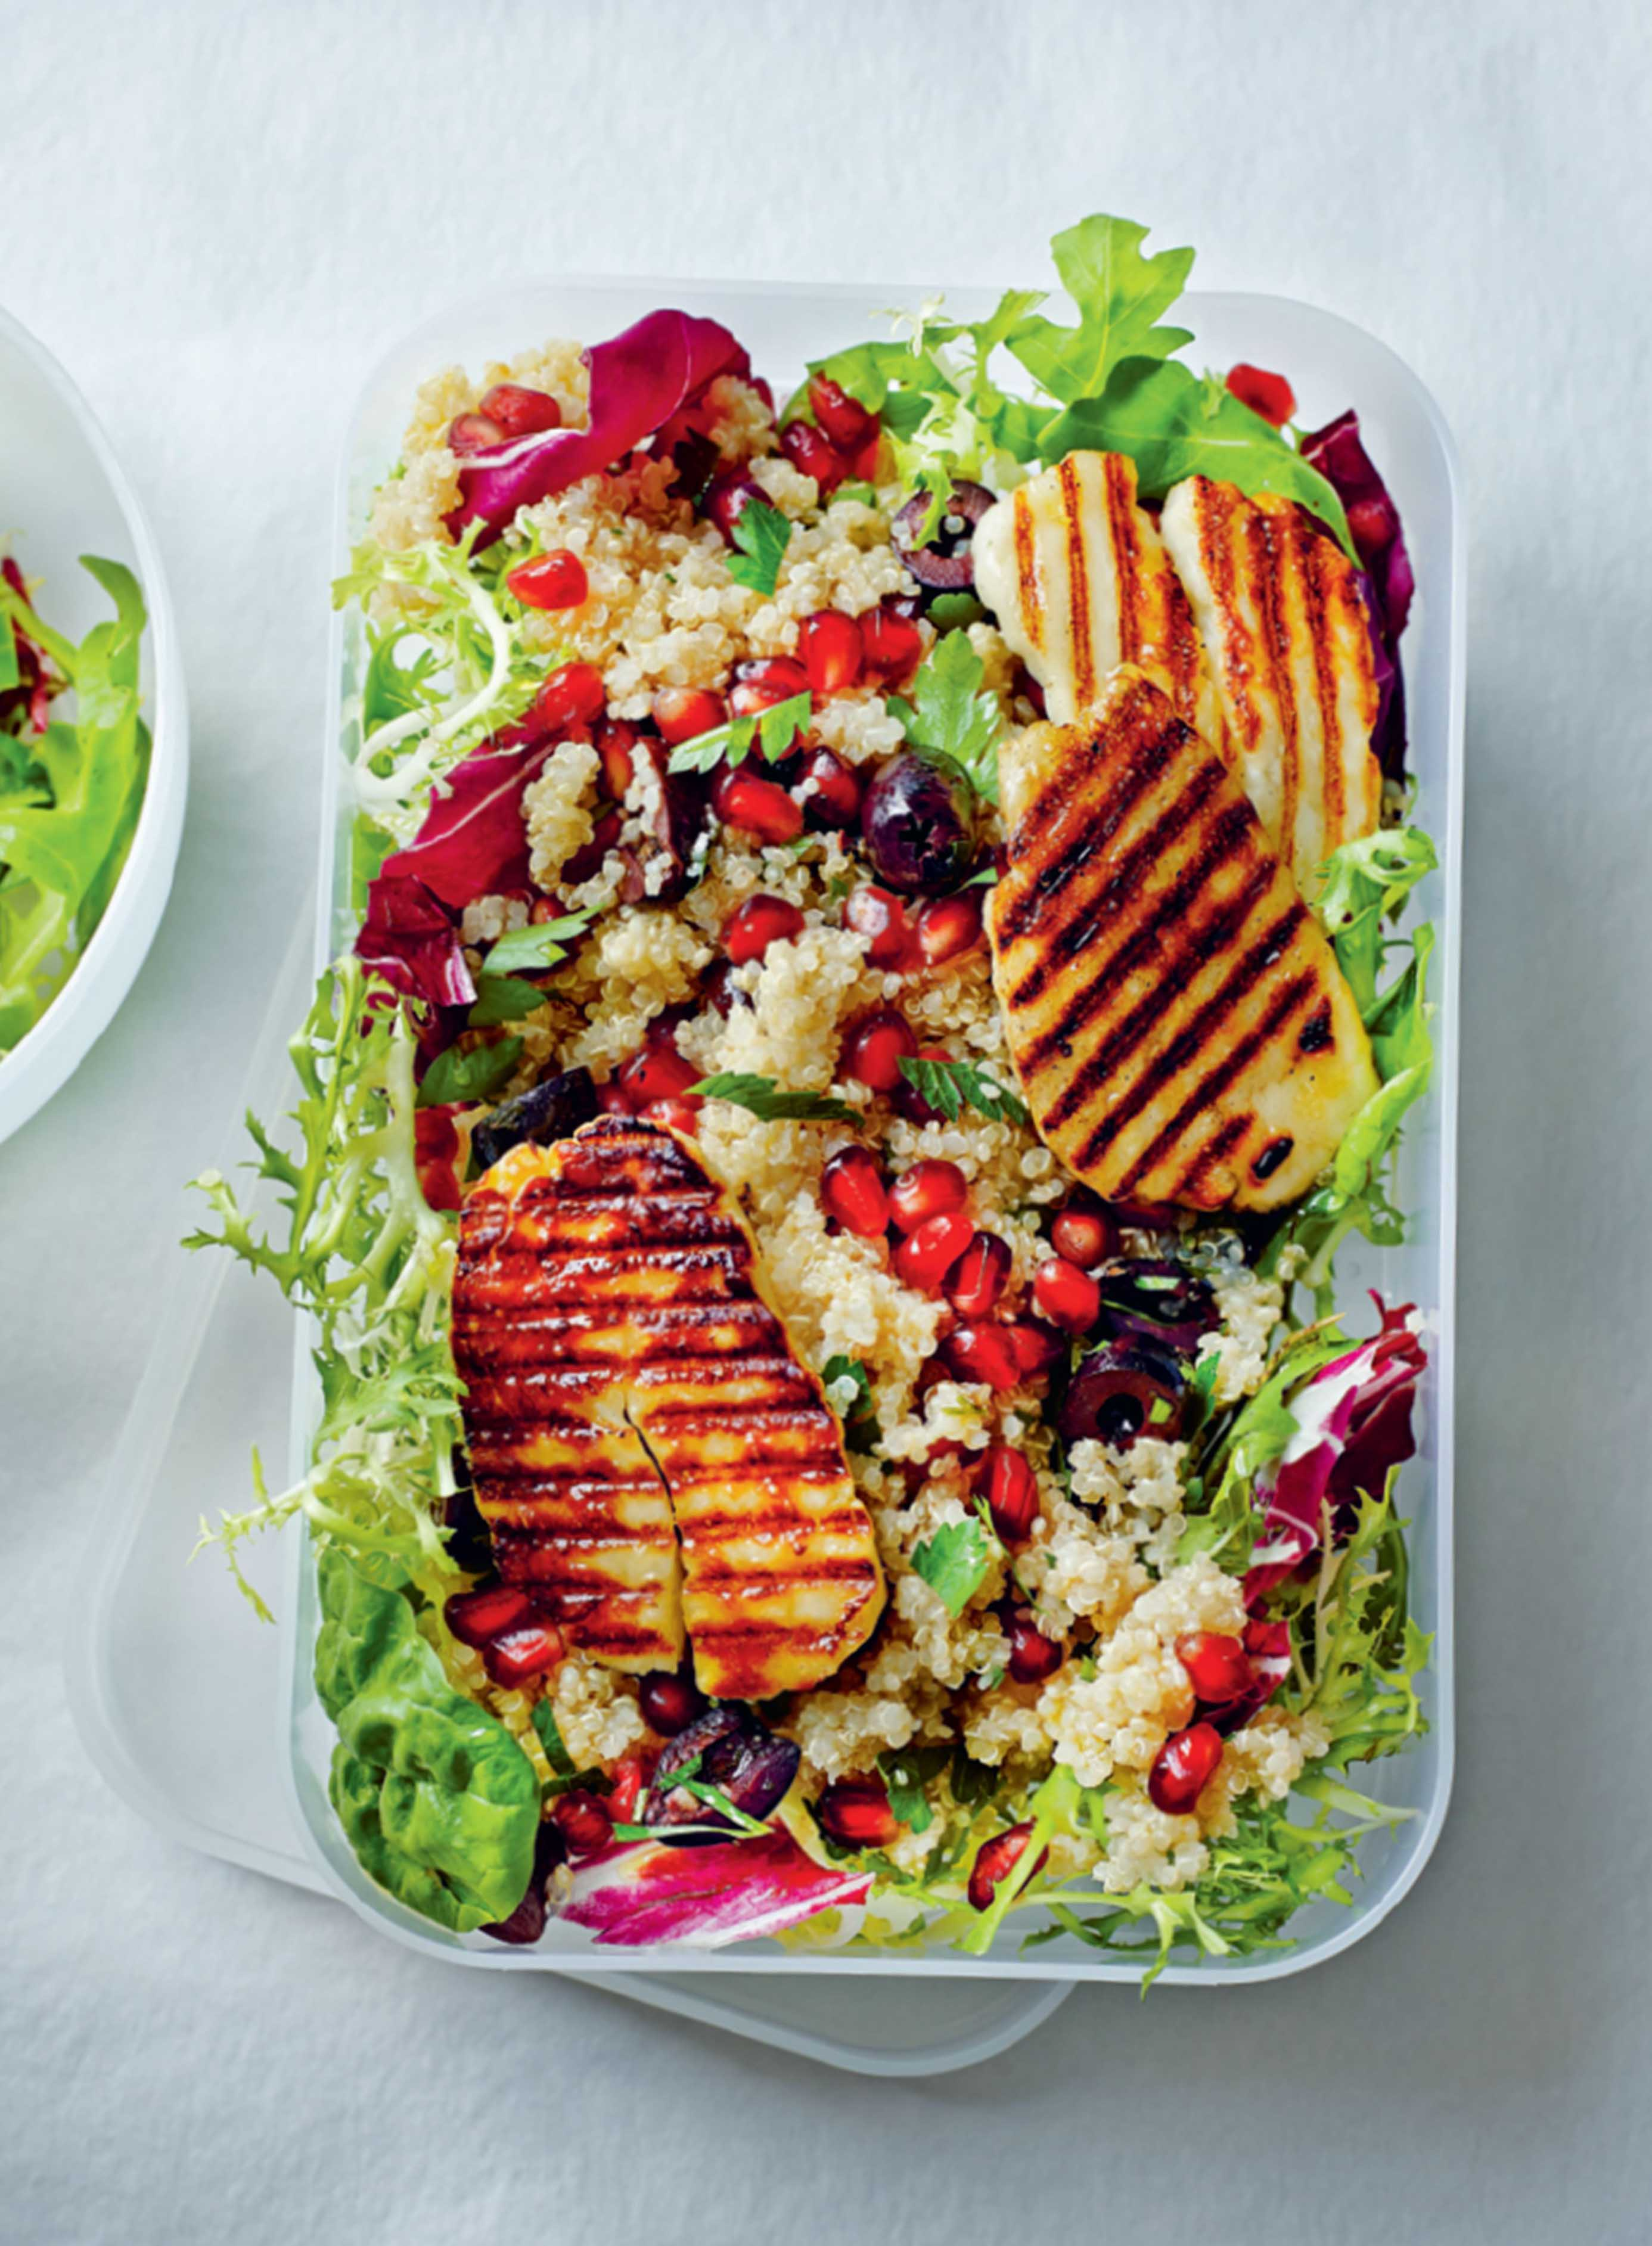 Grilled halloumi with pomegranate quinoa salad